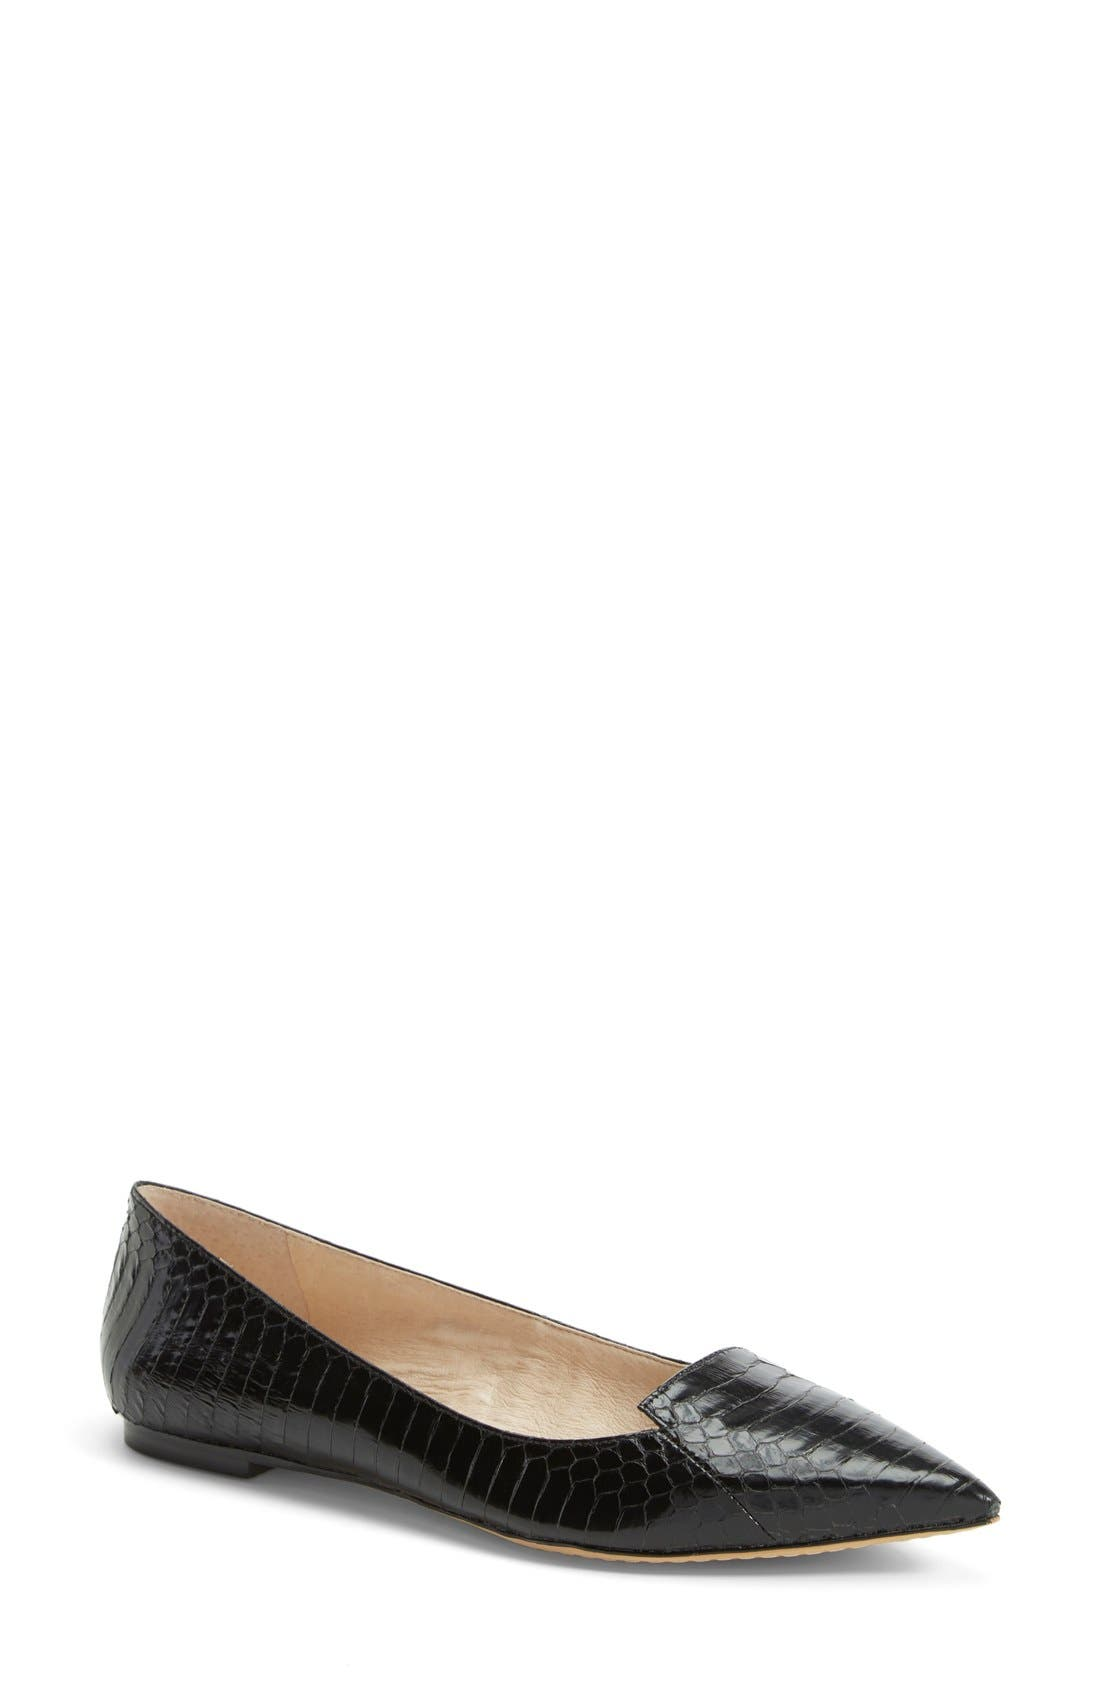 'Empa' Pointy Toe Loafer Flat,                         Main,                         color, 001